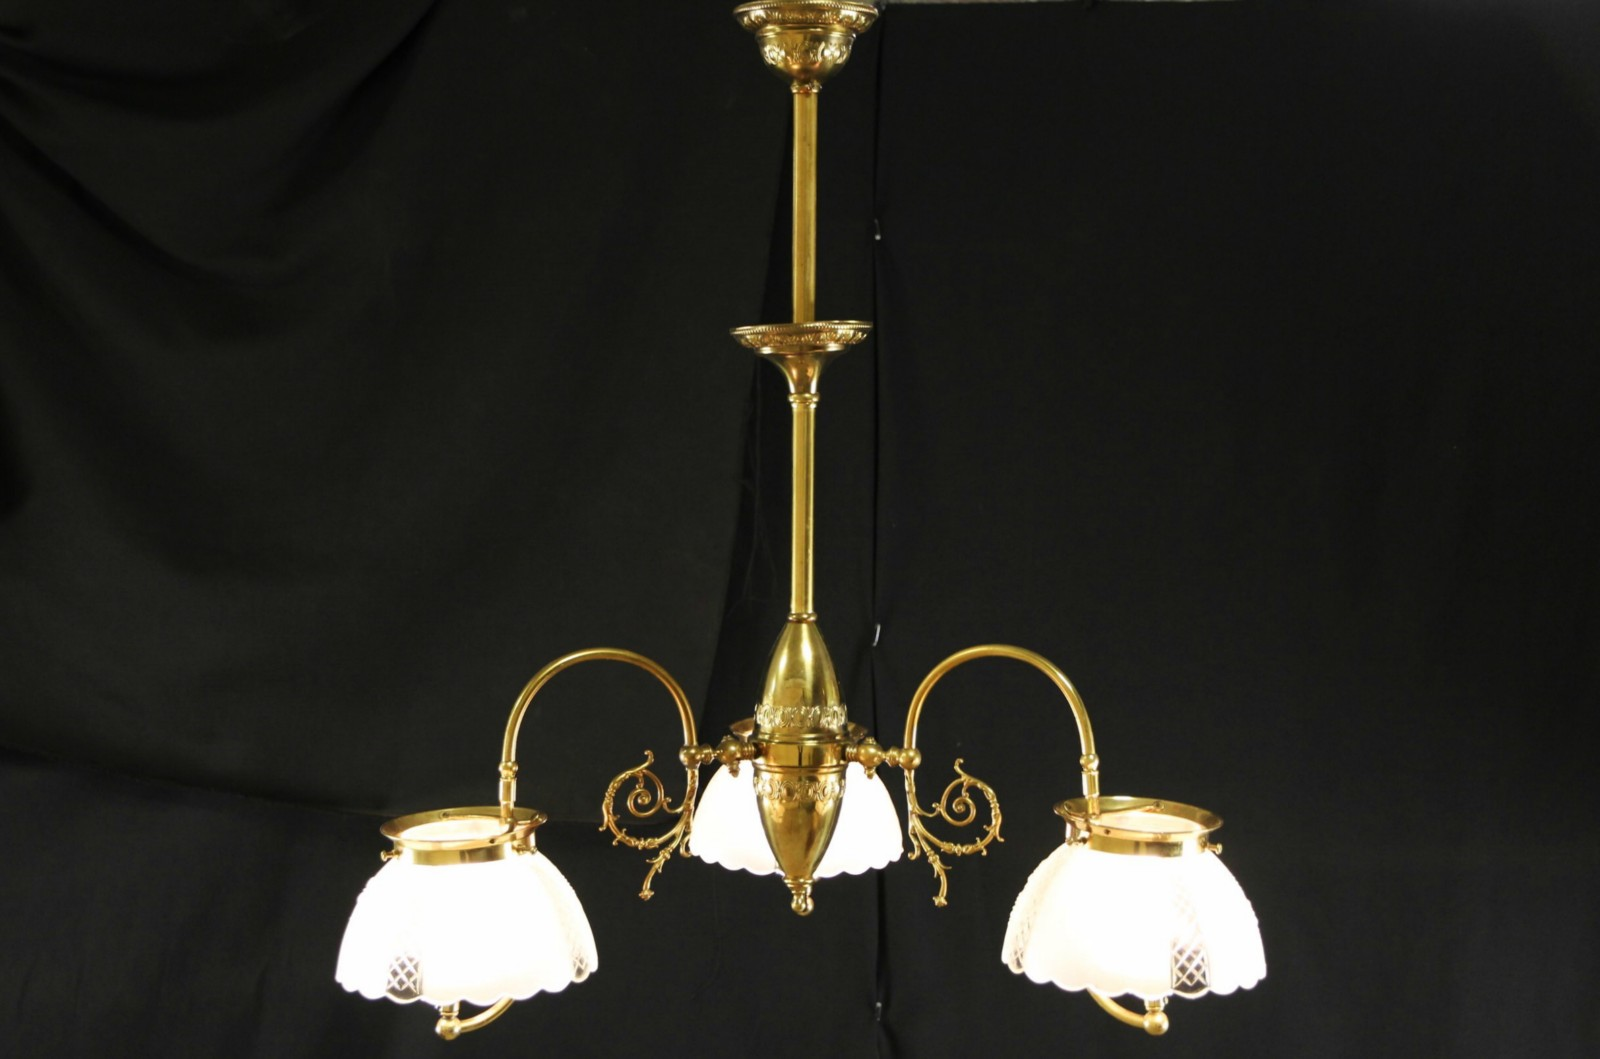 Sold victorian 1890s antique 3 light gas chandelier electrified harp gallery